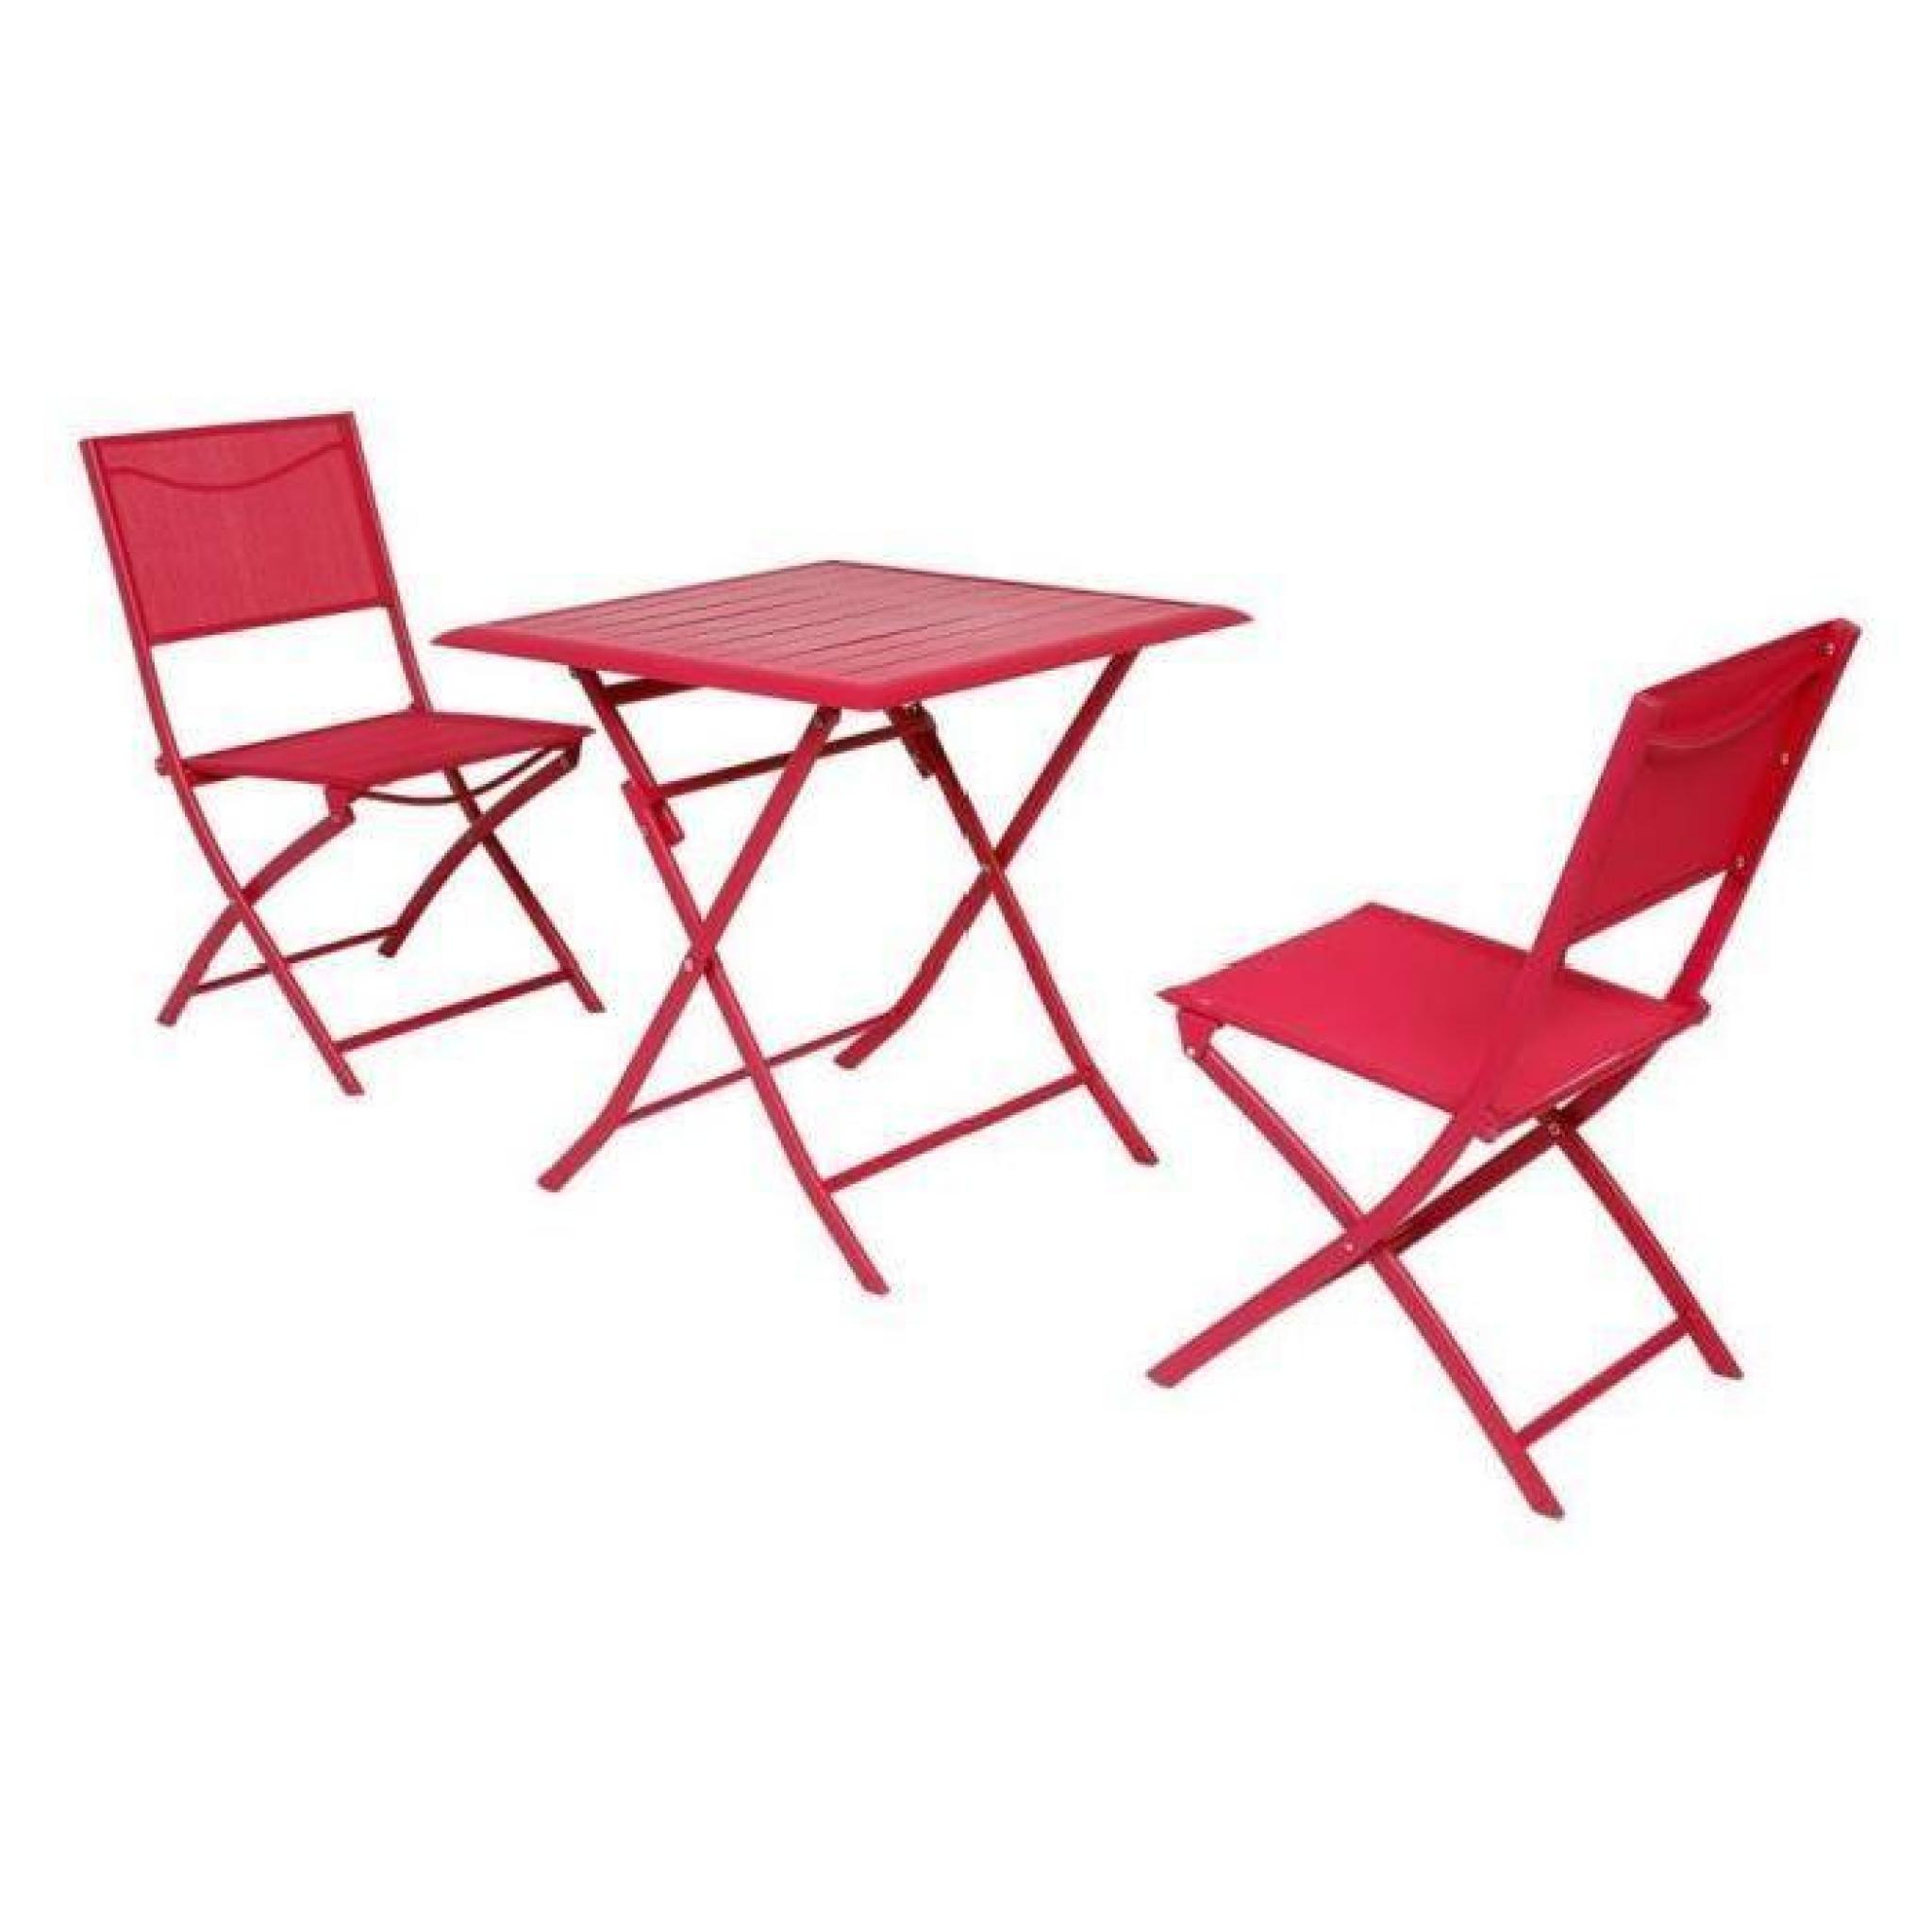 Table azua hesperide pliante alu cerise 2 places achat - Table de jardin hesperide azua ...